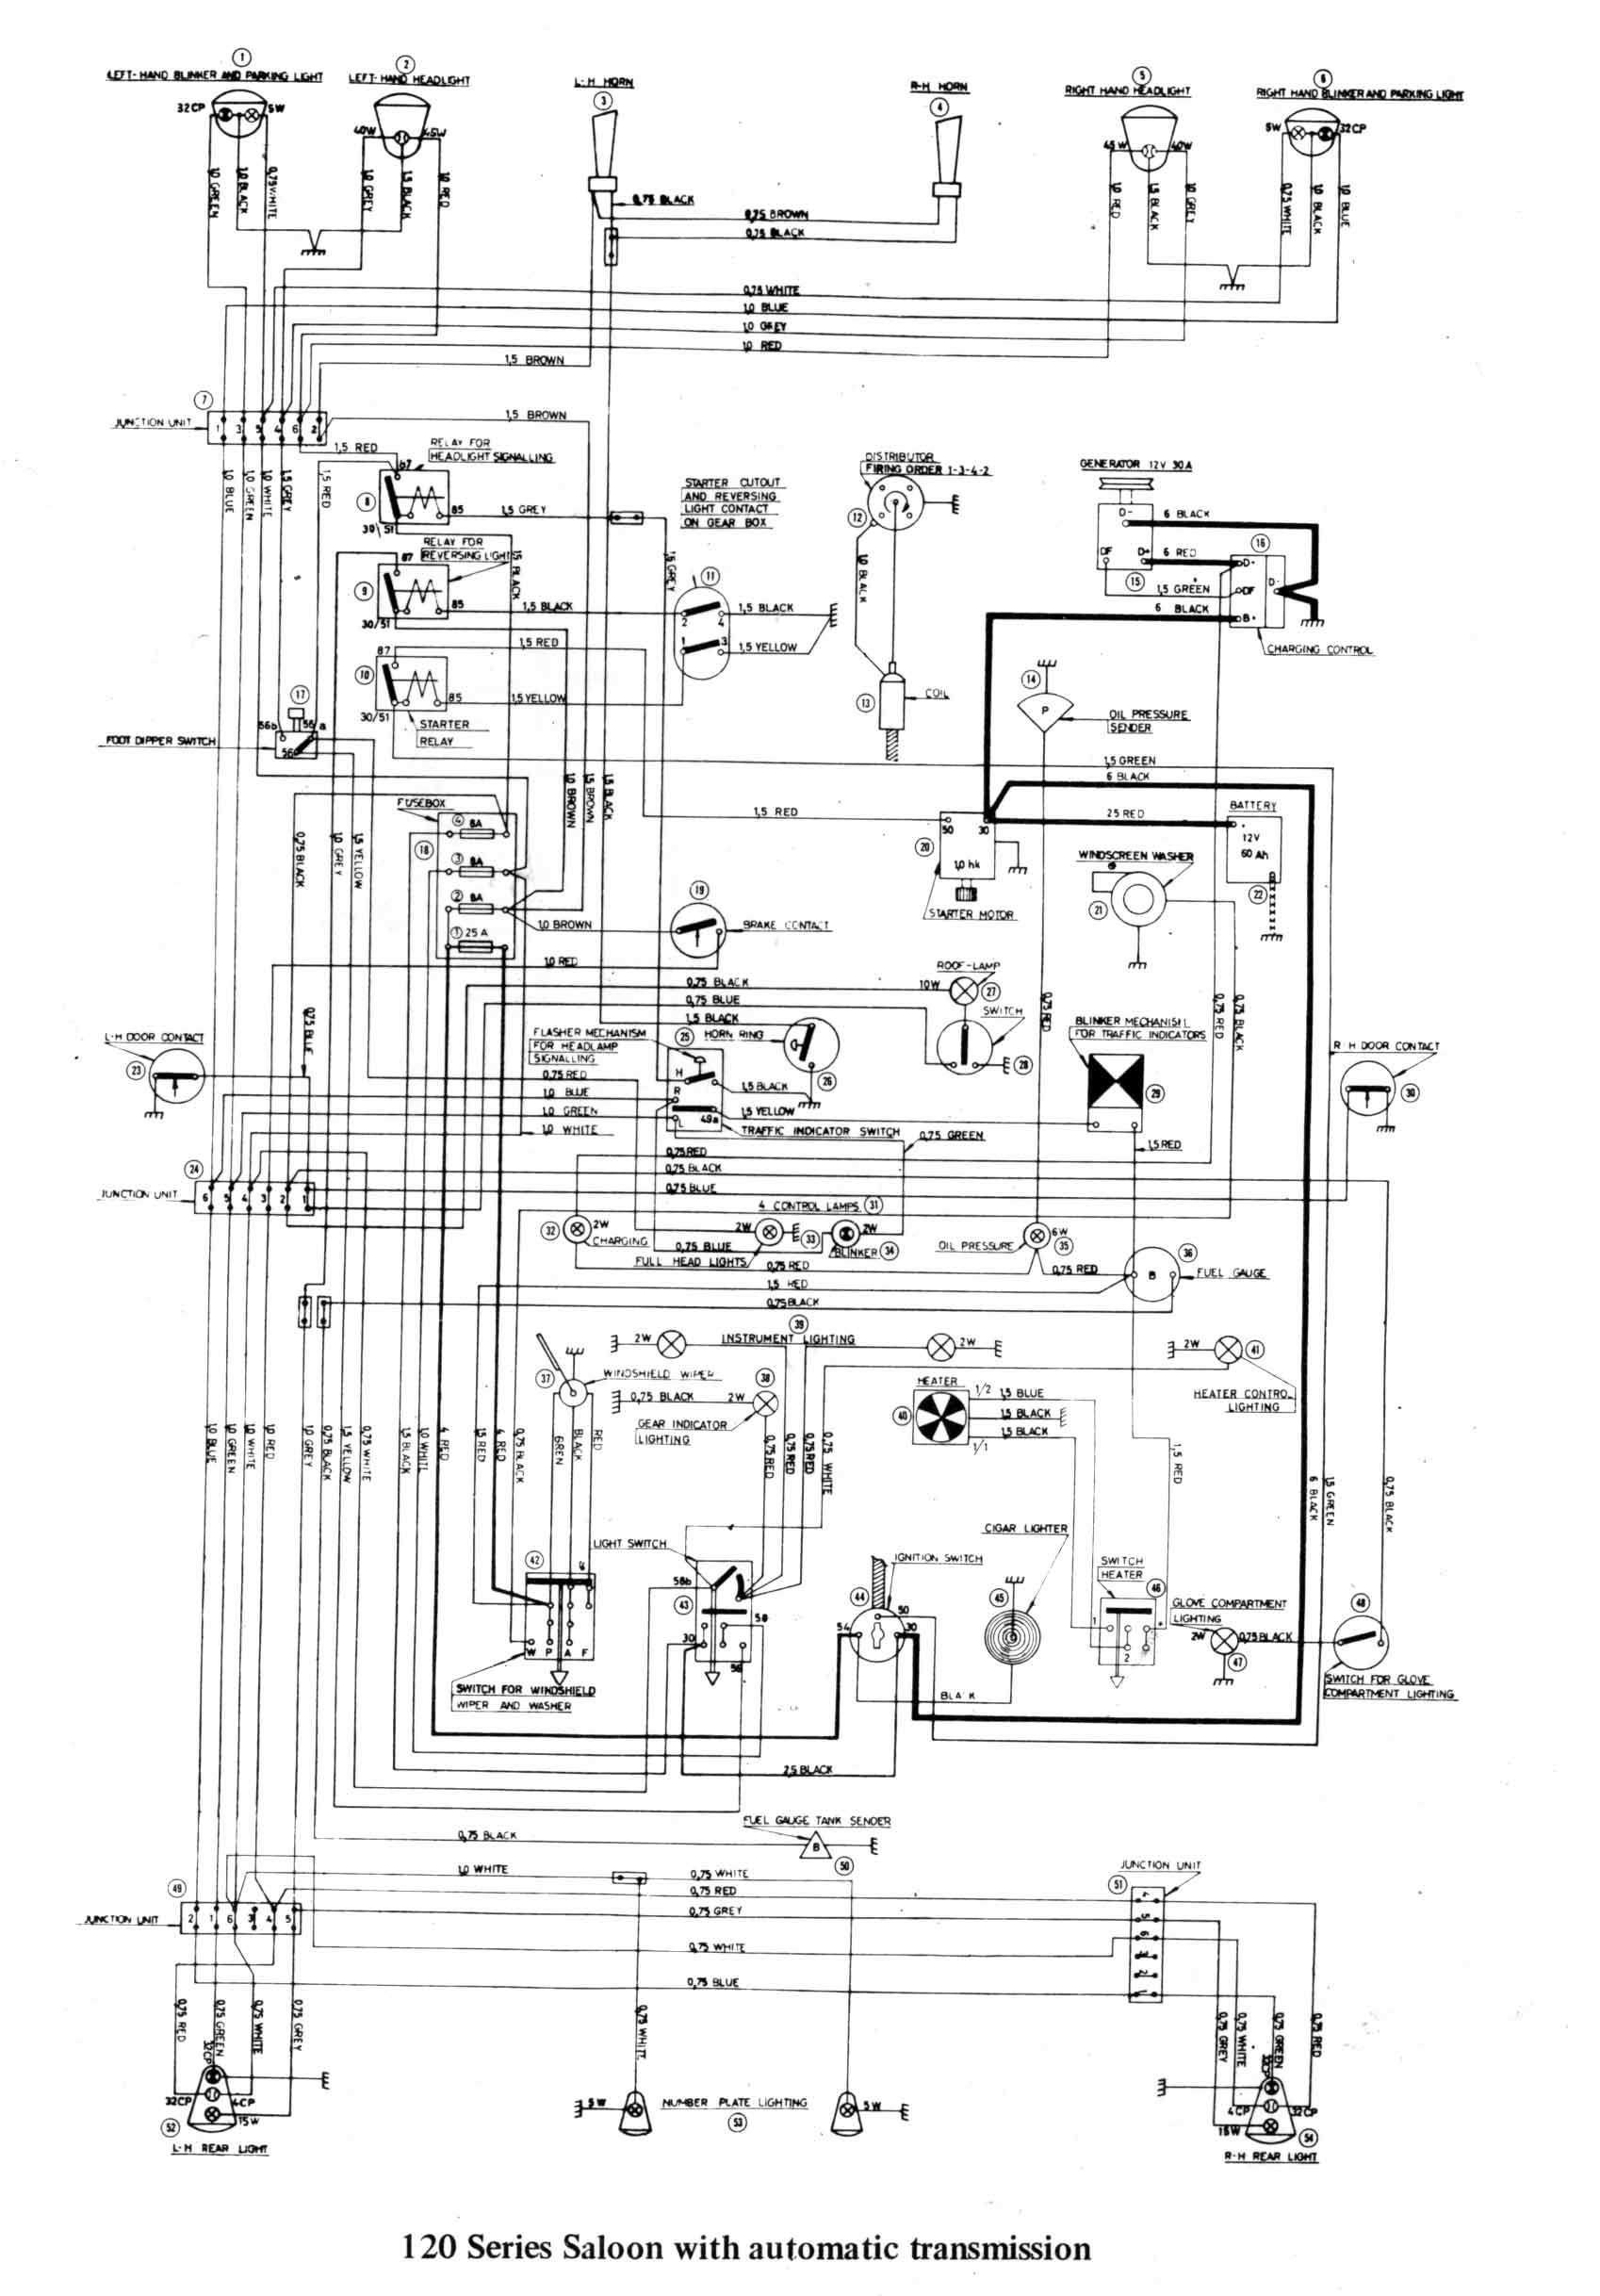 hight resolution of cat th82 joystick wiring diagram guide about wiring diagramcat th82 joystick wiring diagram wiring diagram cat